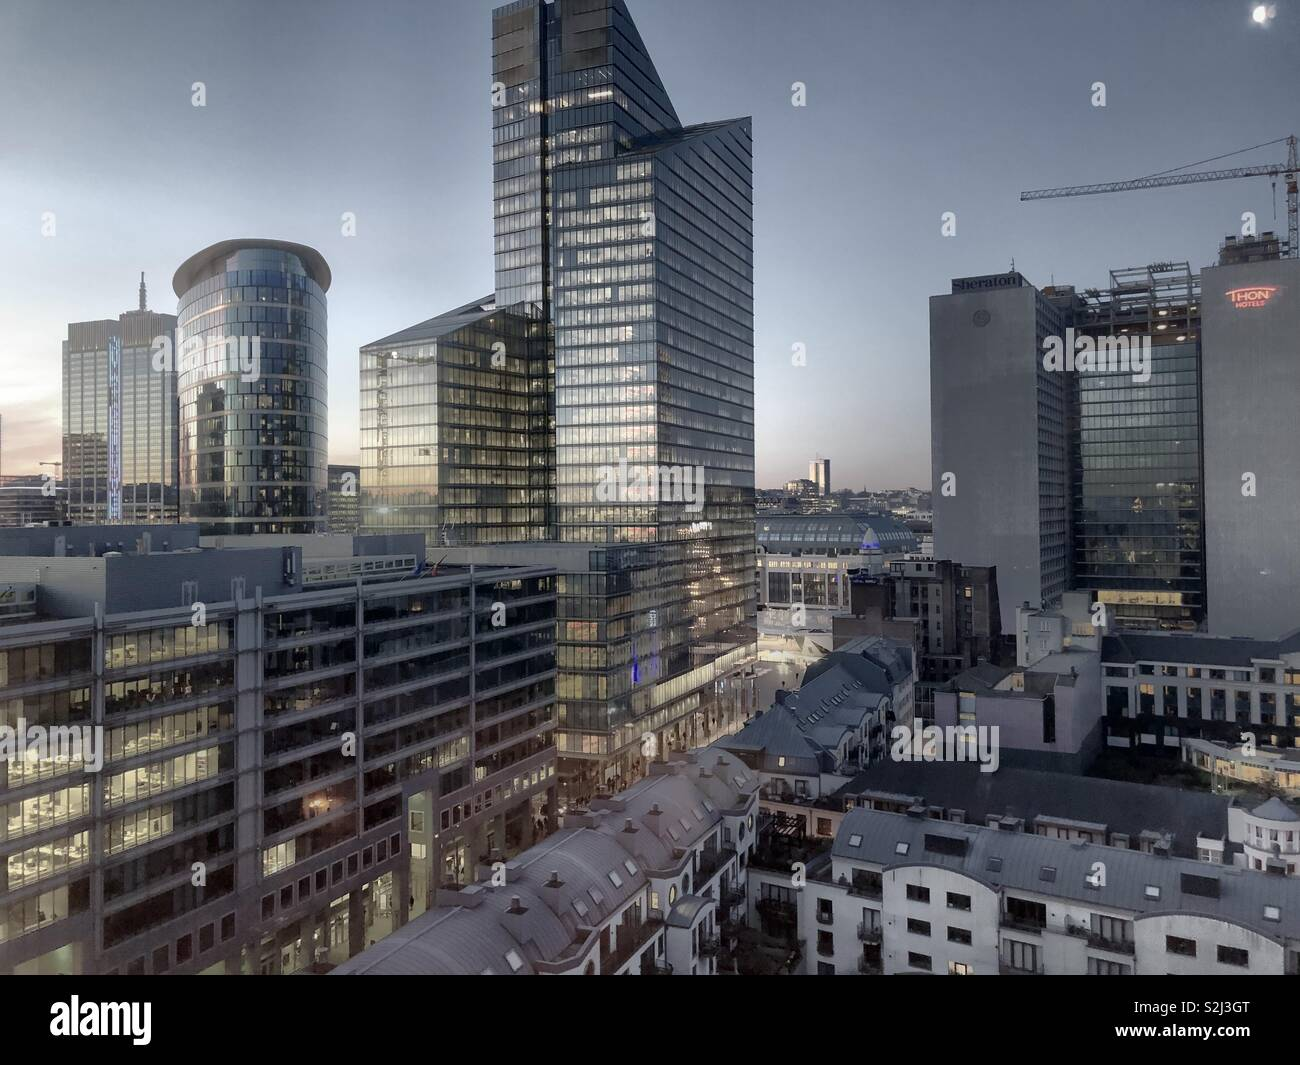 A full spectrum of colors during sunrise shown in the sky and the reflection of the sky in the glass of the business offices of the financial district of the city - Stock Image